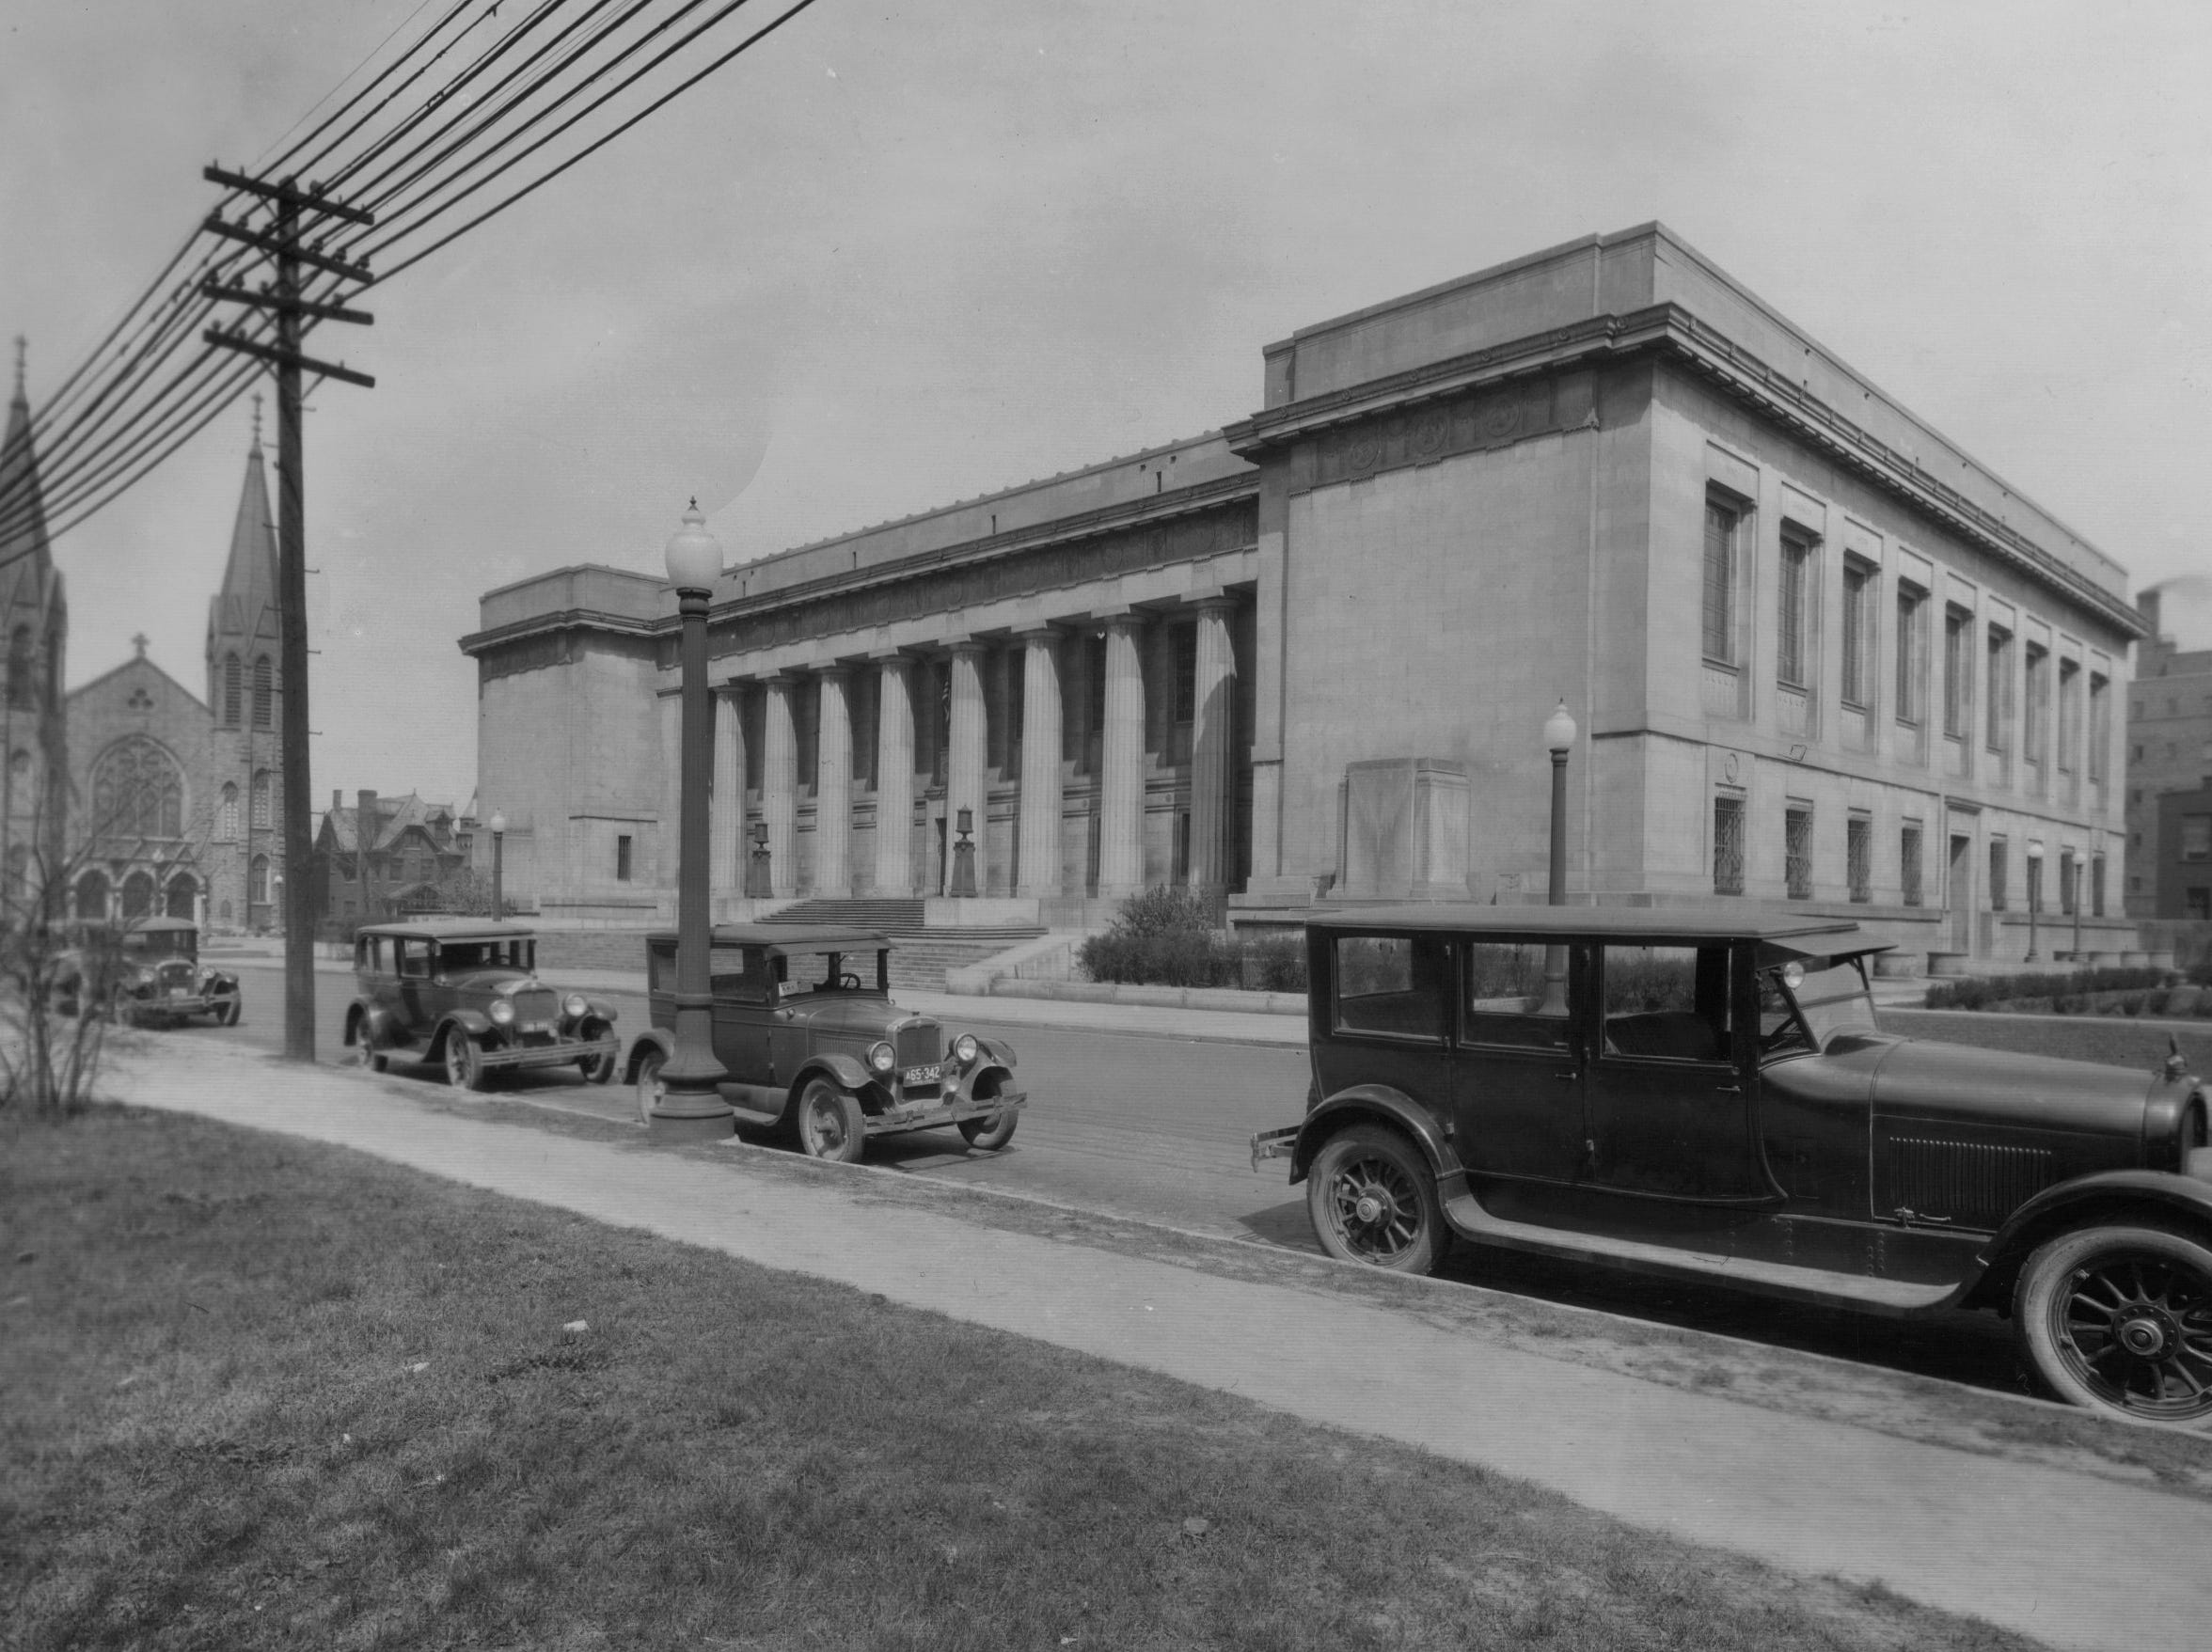 1928 photo of the Indianapolis Central Library  on land donated by James Whitcomb Riley at St. Clair between Pennsylvania and Meridian Streets.The building was designed by Philadelphia architect Paul Cret, and was designed in a Greek Doric style fashion and constructed of Indiana limestone.